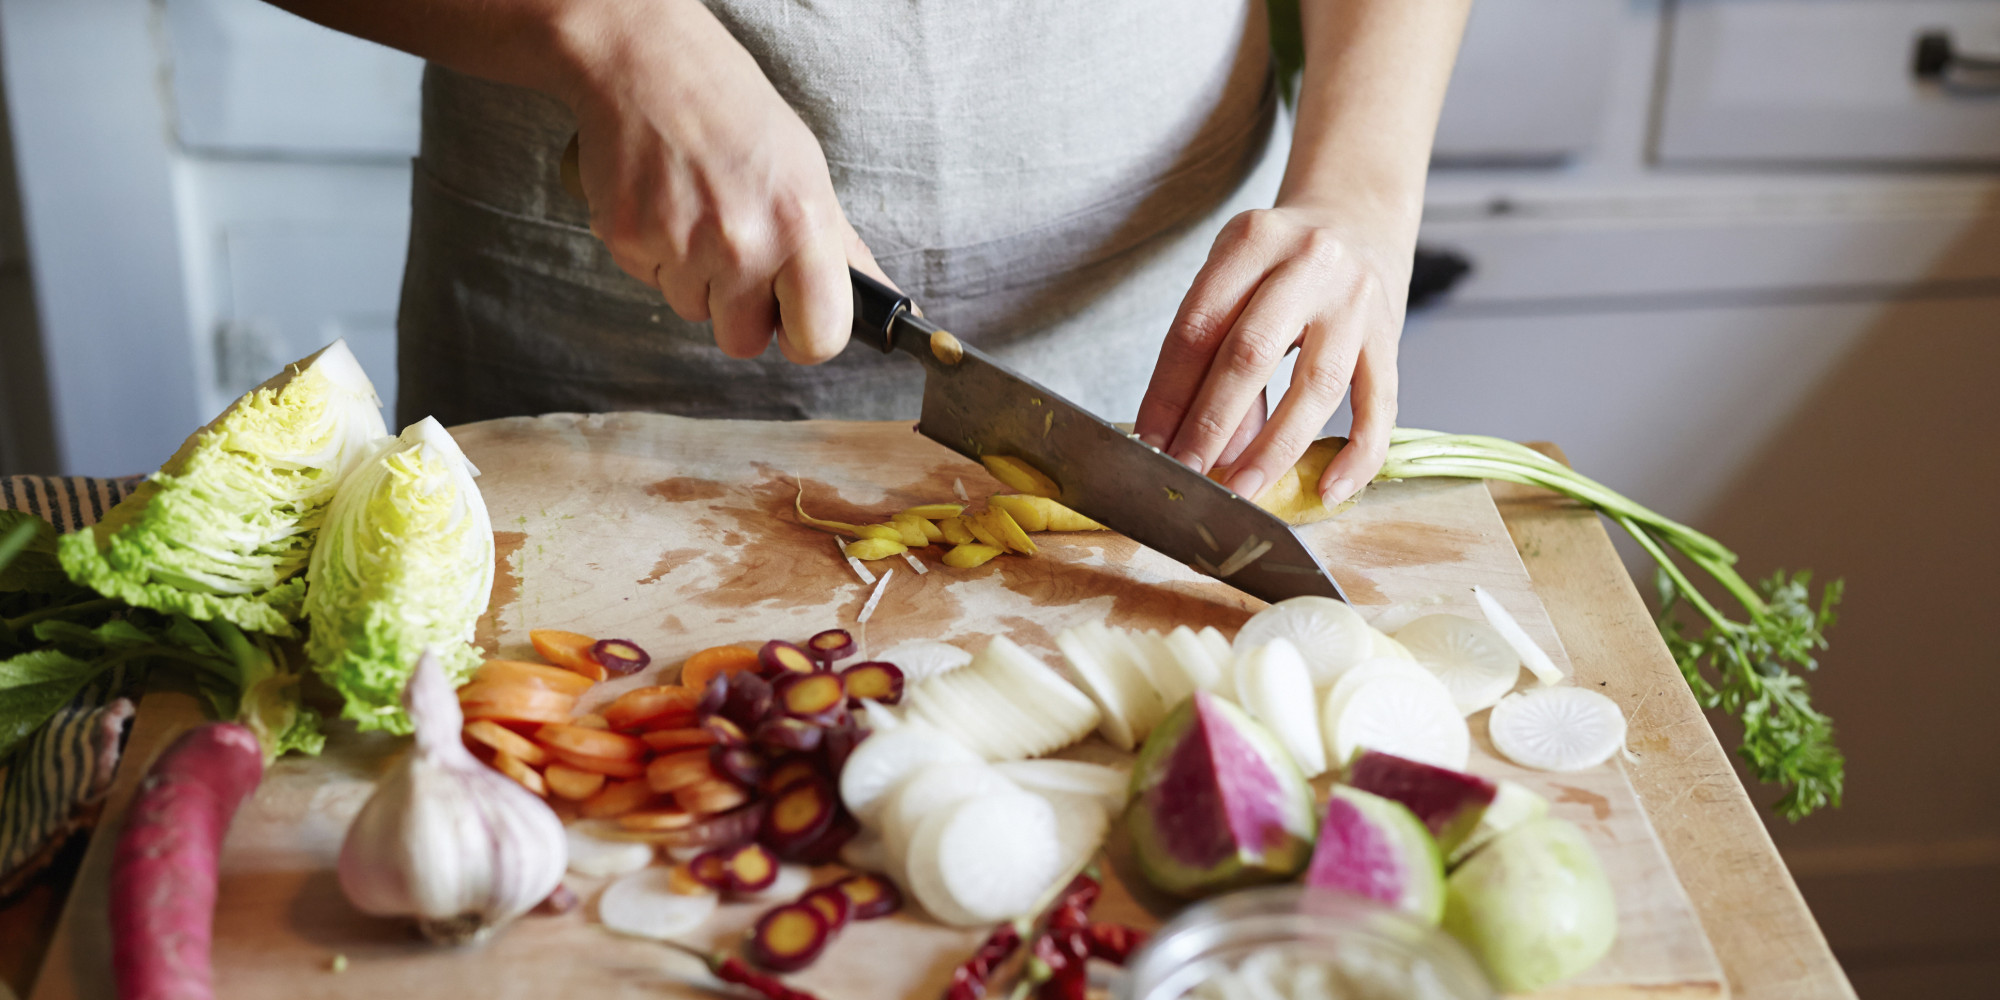 10 ways to get rid of pesky cooking smells | huffpost